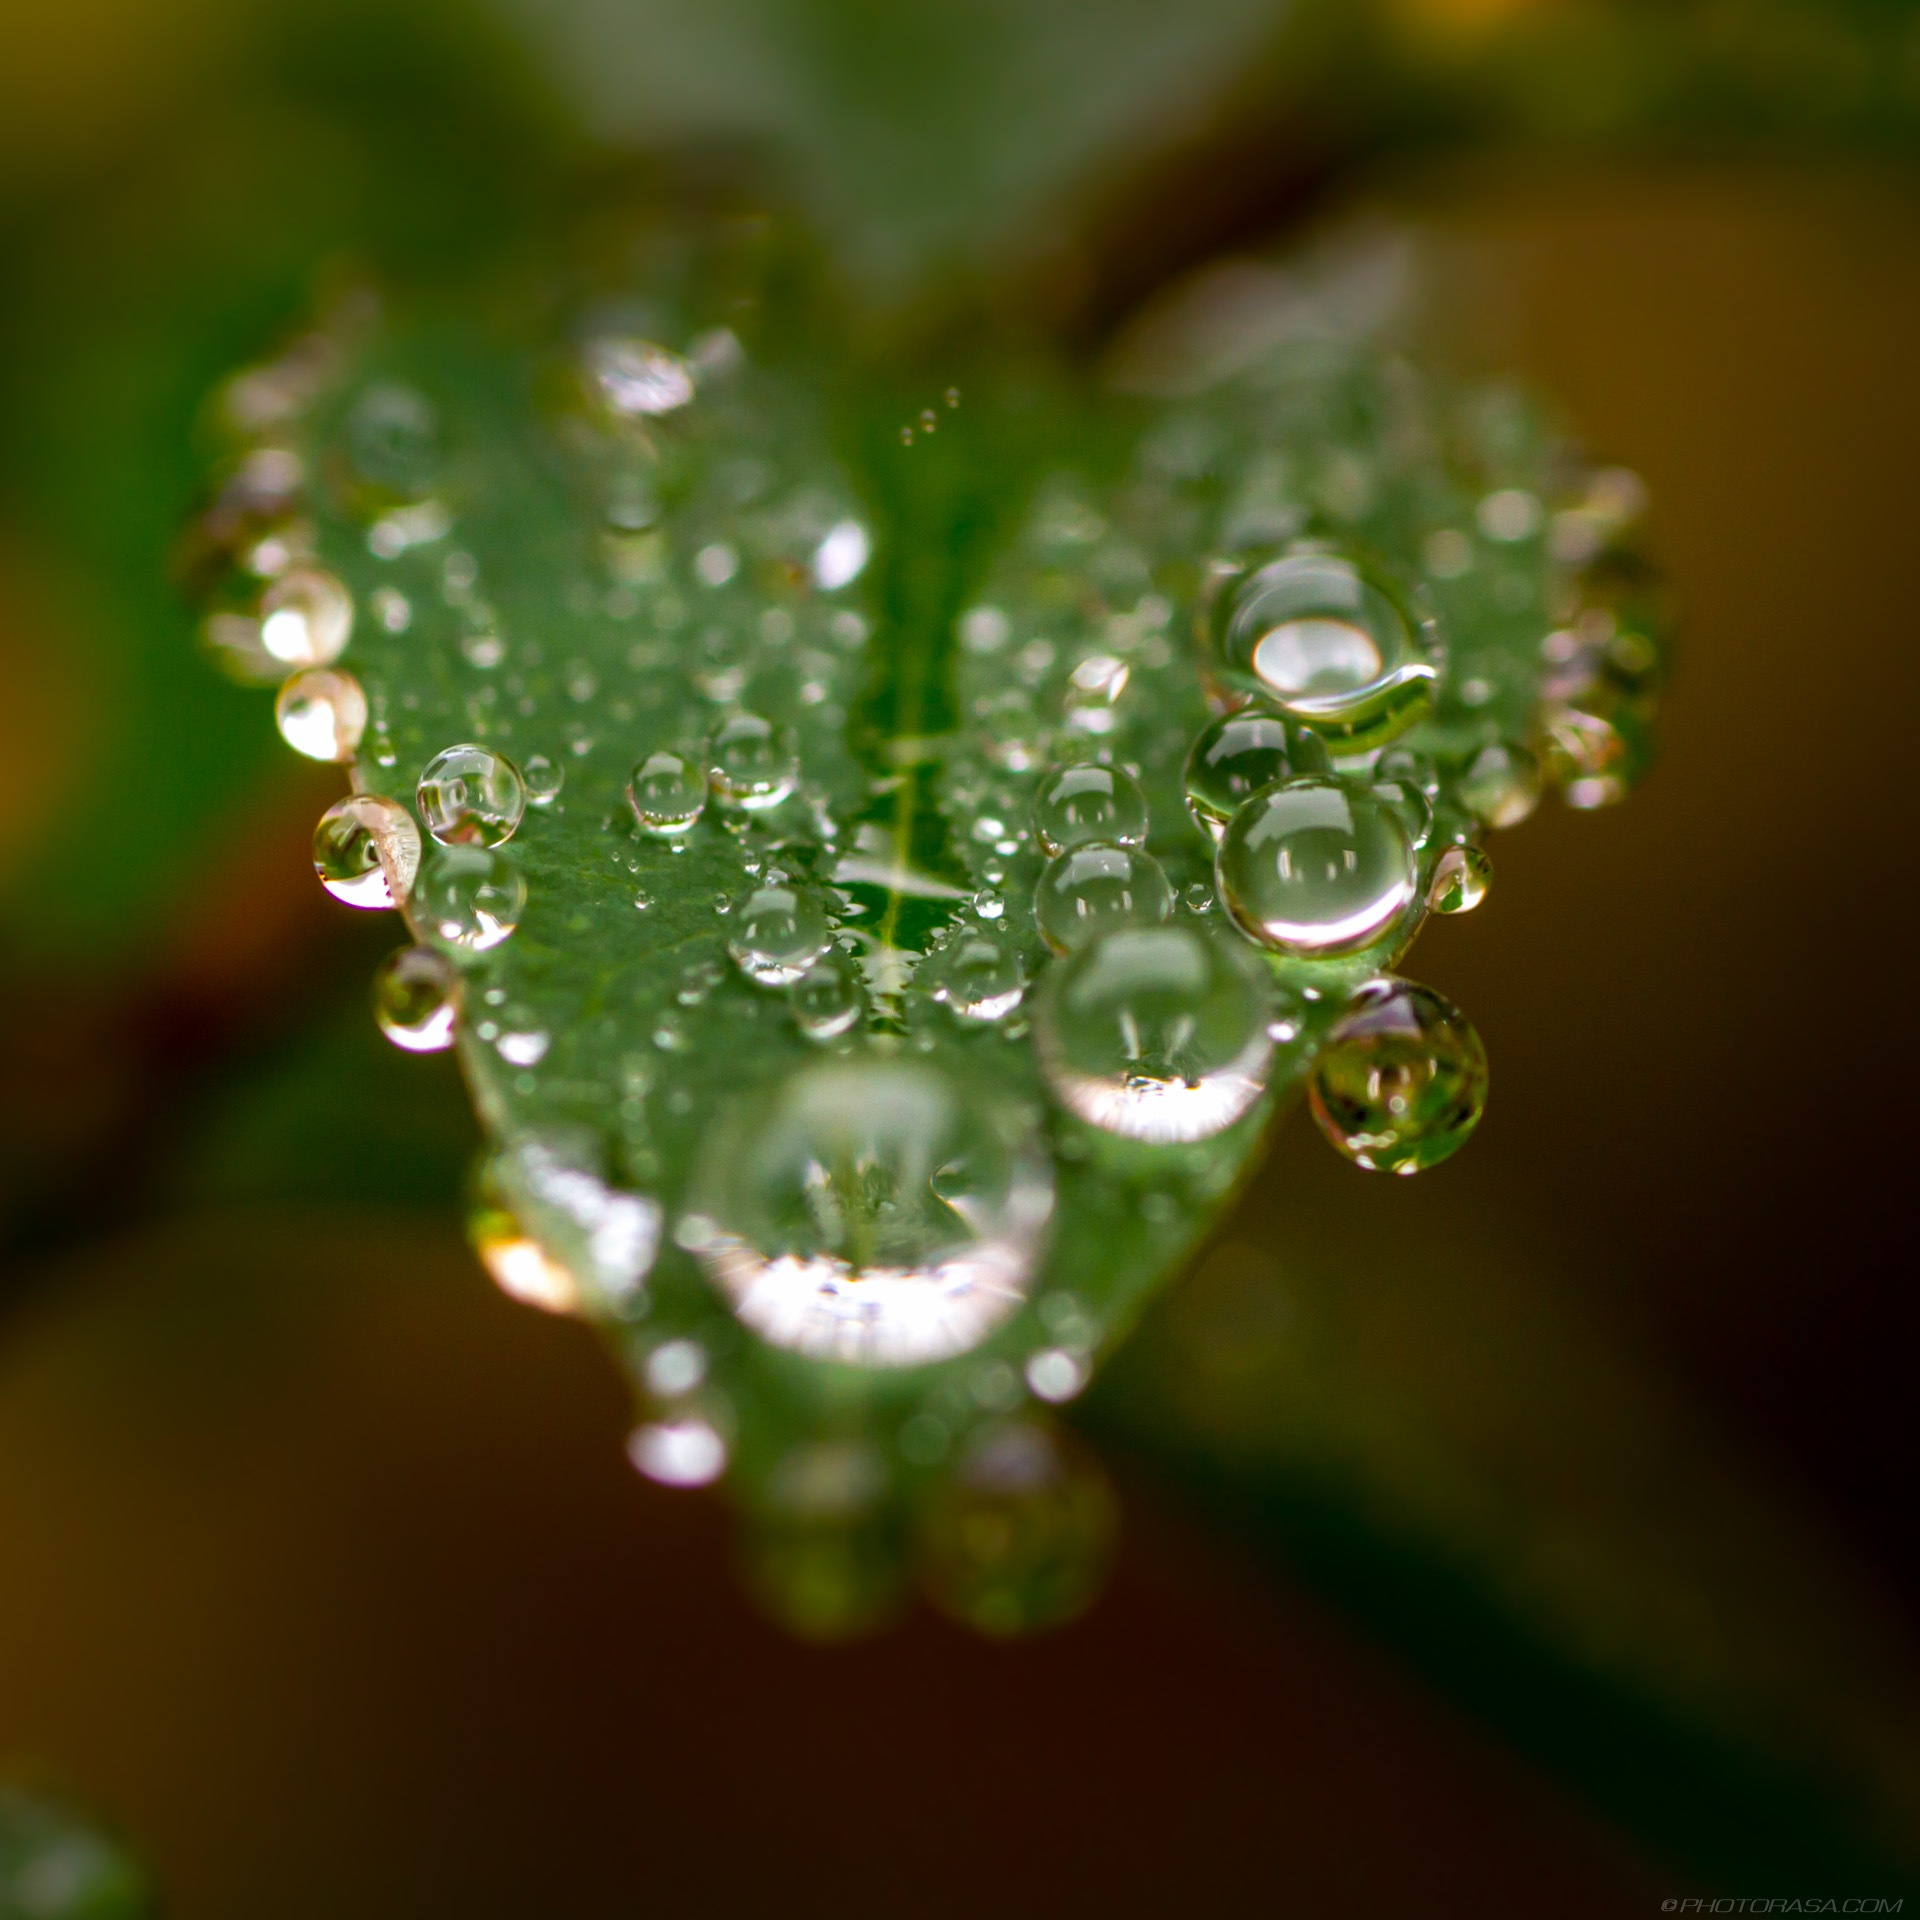 http://photorasa.com/dewdrops-tiny-leaves/macro-of-water-droplets-on-leaf/